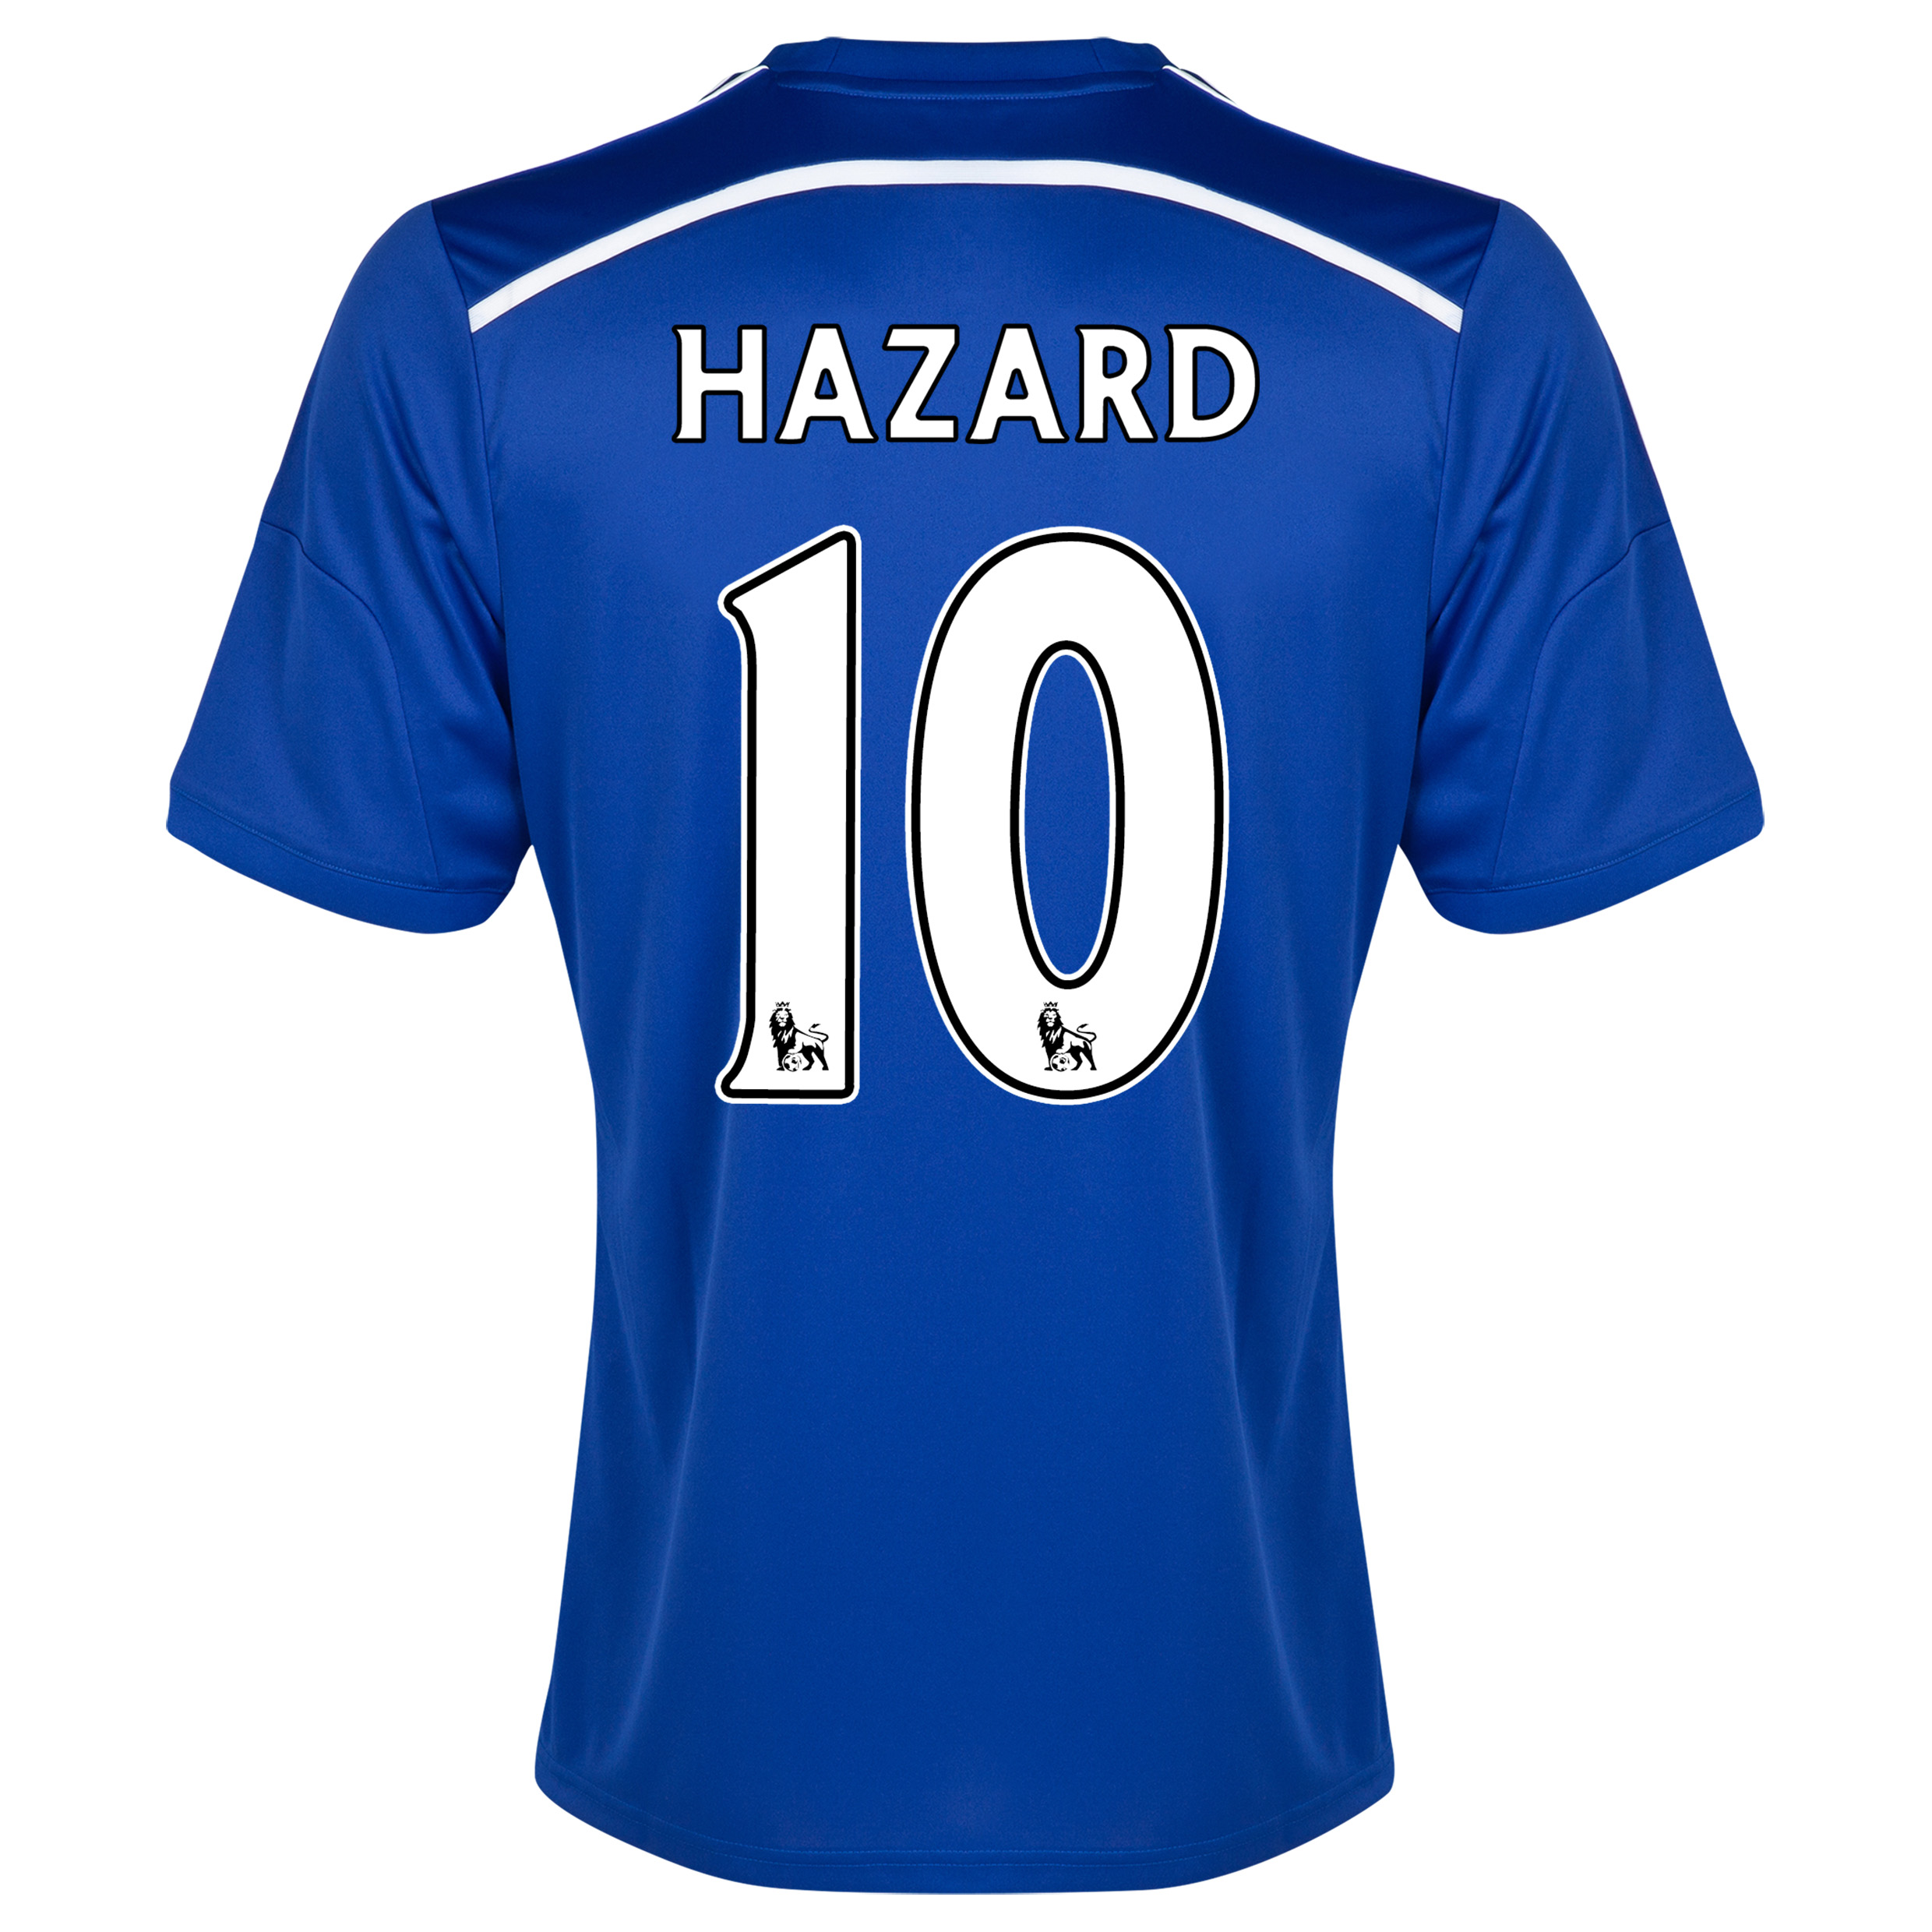 Chelsea Home Shirt 2014/15 - Outsize Blue with Hazard 10 printing